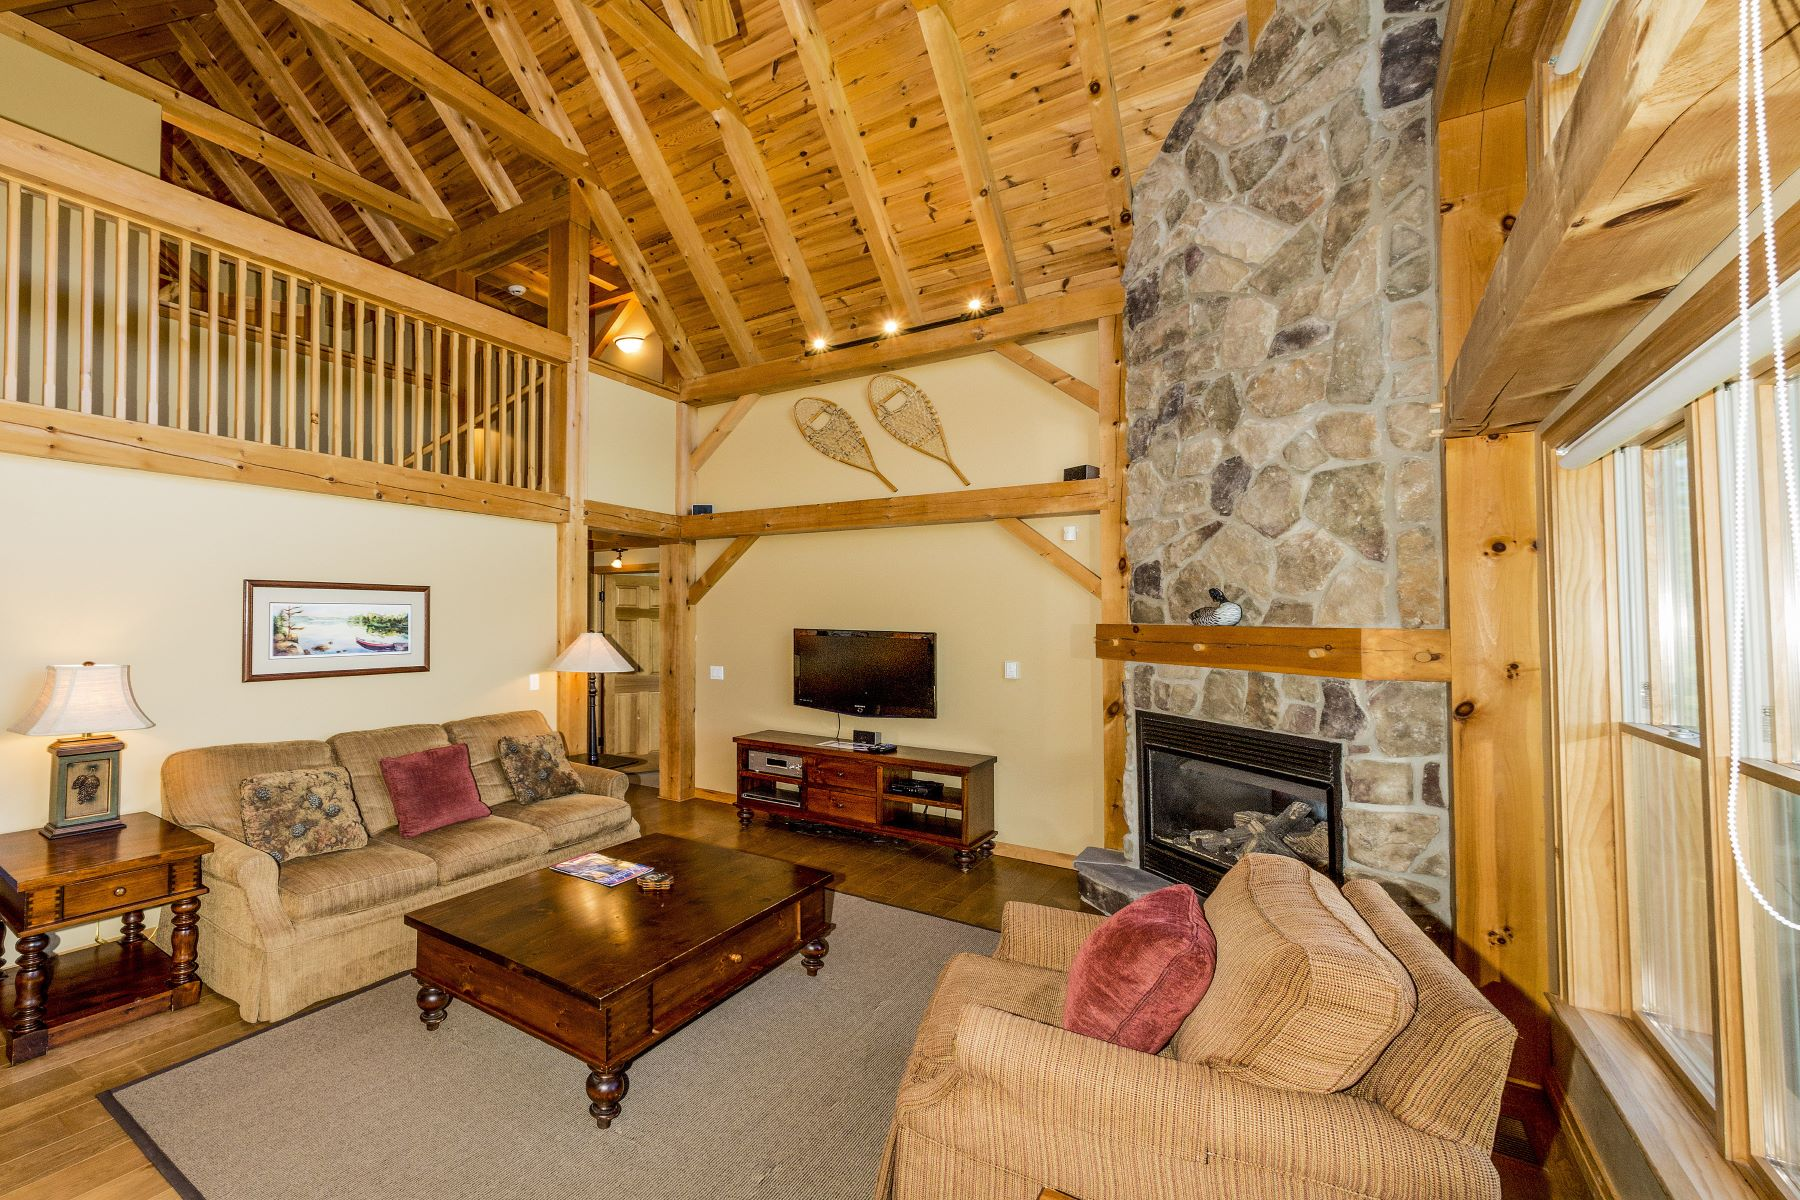 Additional photo for property listing at Augusta Of The North 1137 Old Parry Sound Rd Utterson, Ontario P0B 1M0 Canada